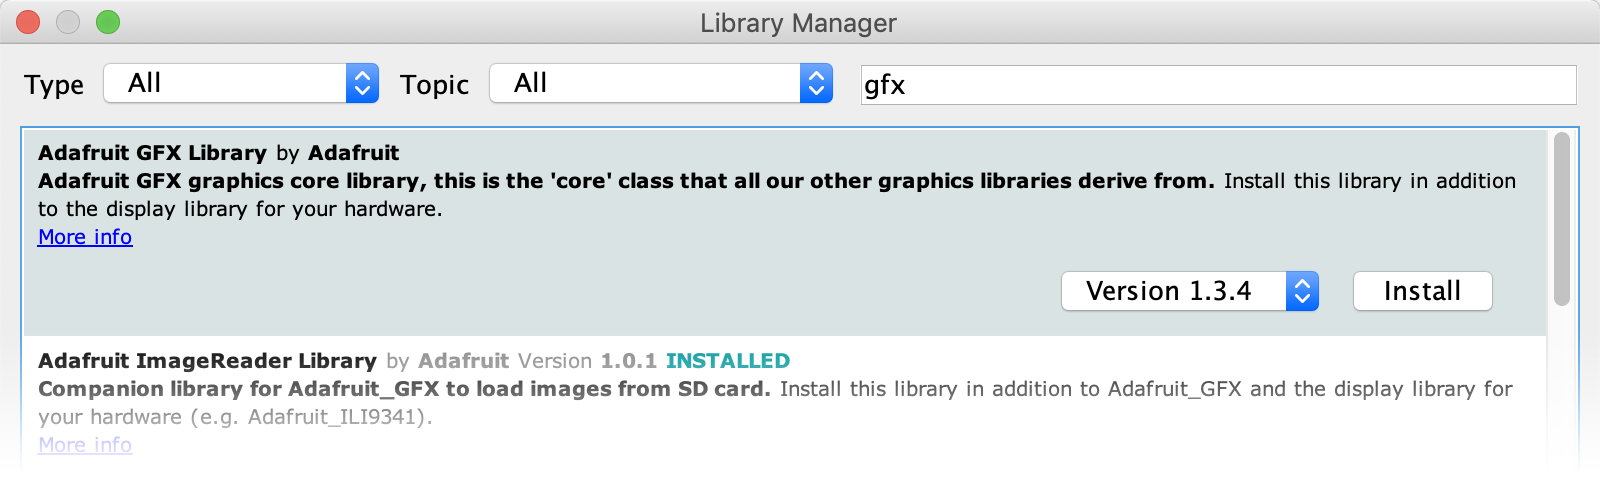 adafruit_products_adafruit-gfx-library-manager.png